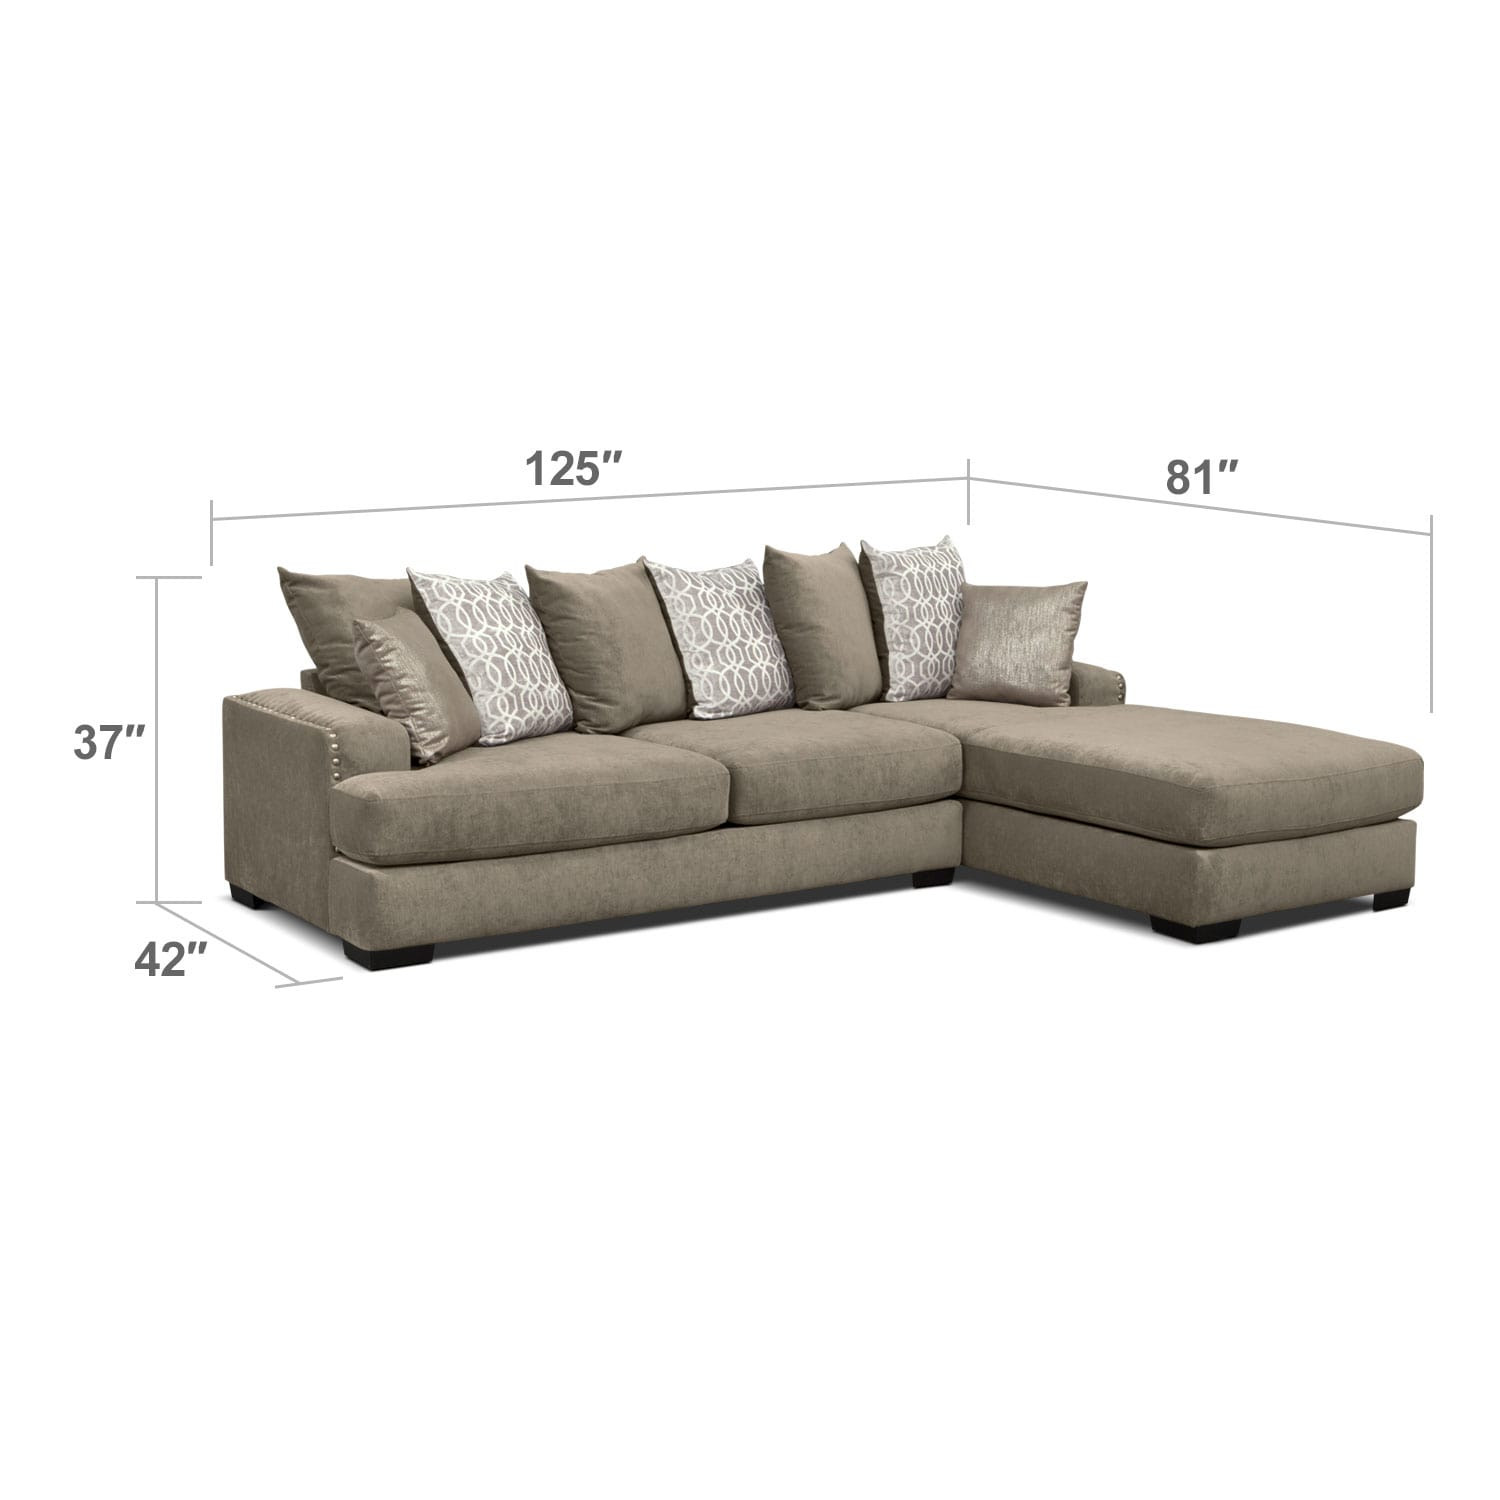 bryson 2 pc sectional with right facing chaise. Black Bedroom Furniture Sets. Home Design Ideas